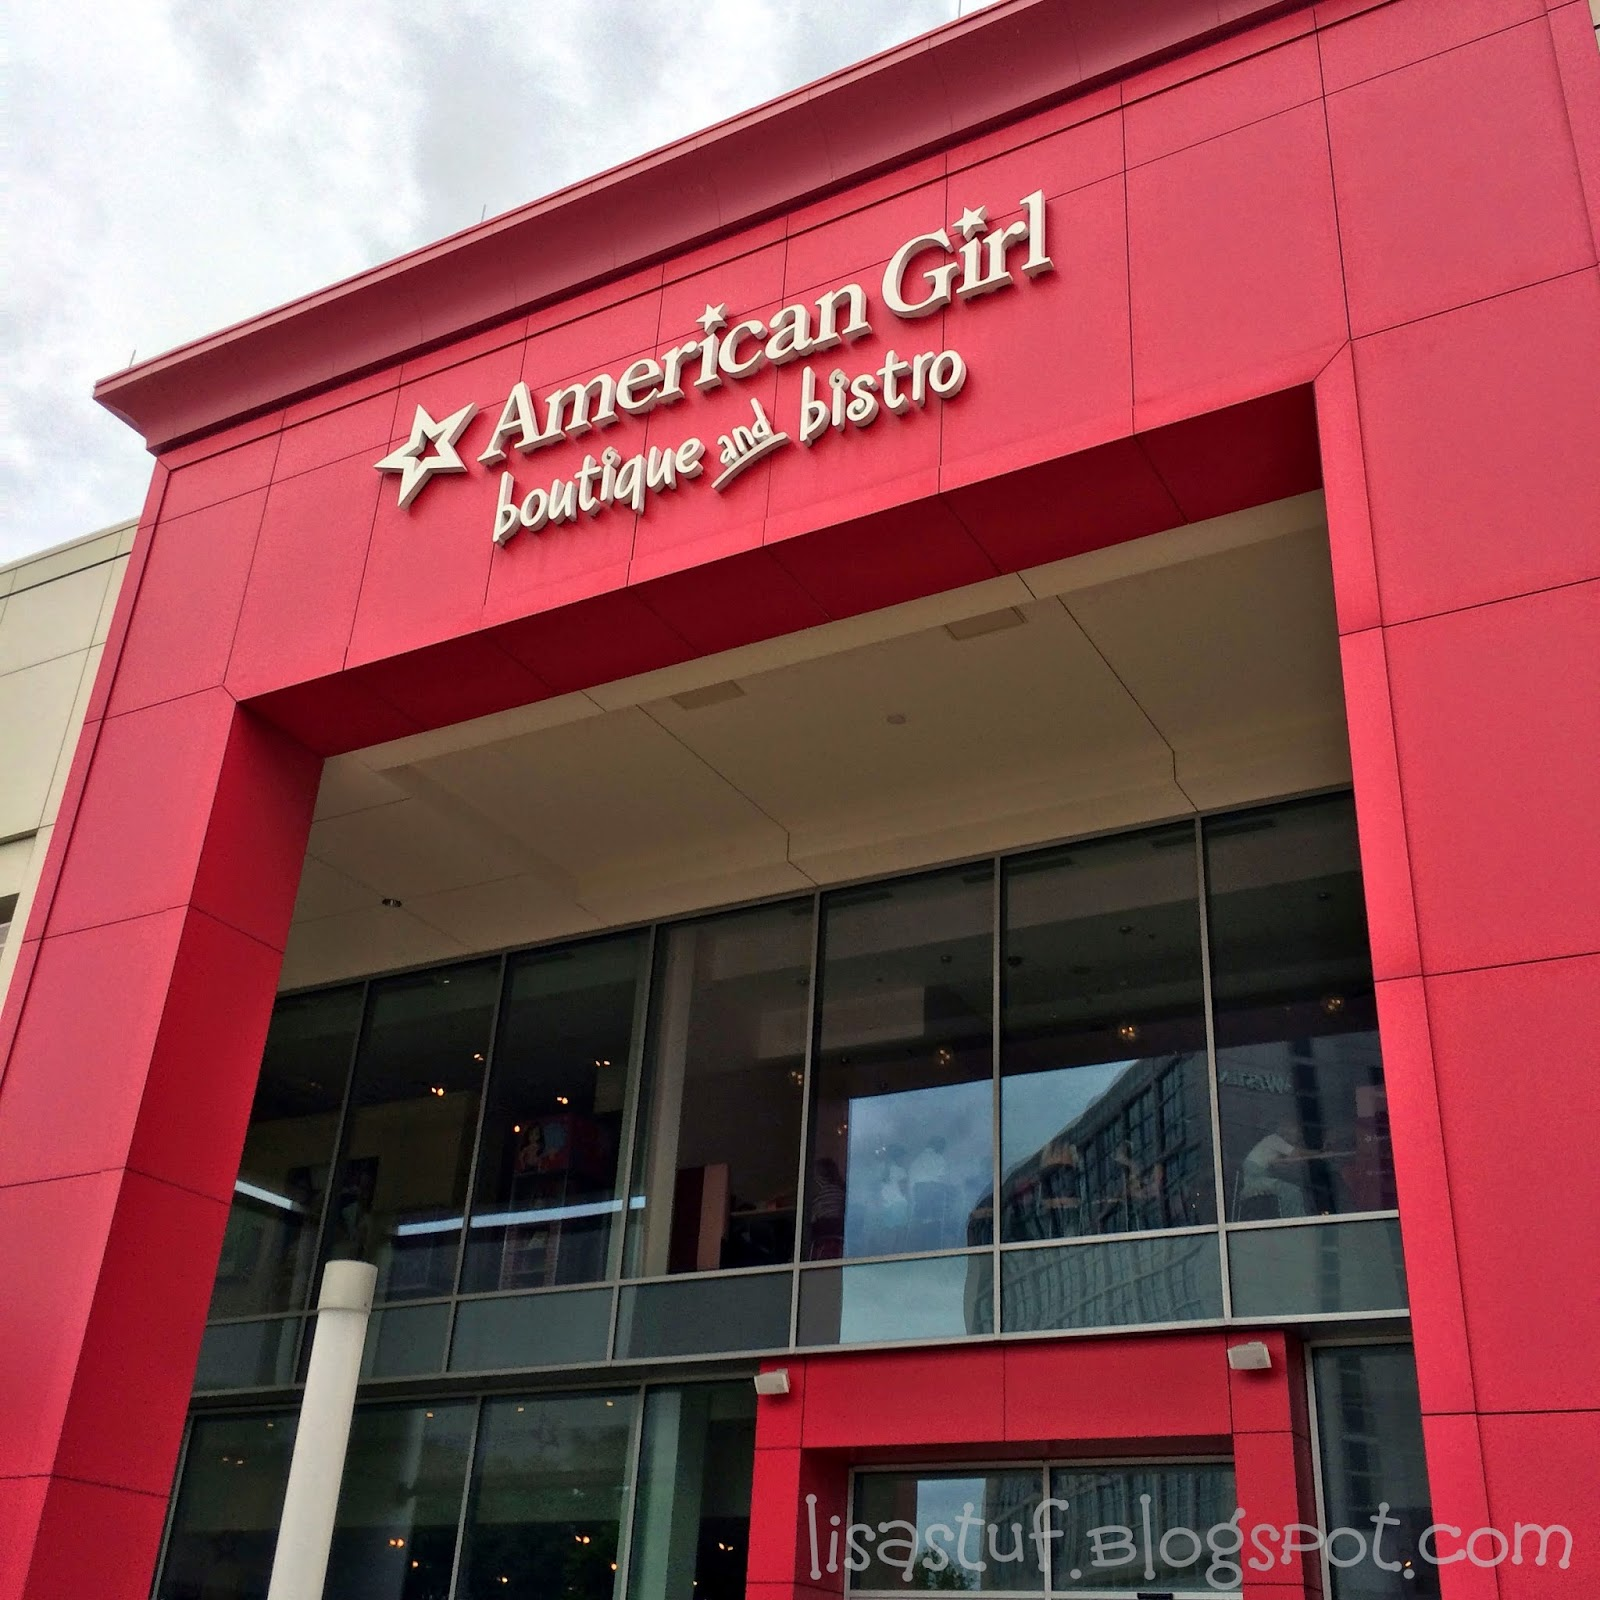 American Girl Dallas Dallas Parkway Dallas TX 62 Reviews () Website. Menu & Reservations Came here because my daughter wanted an American Girl doll. That portion of the store is excellent. The Bistro SHOULD BE AVOIDED at all 6/10(62).